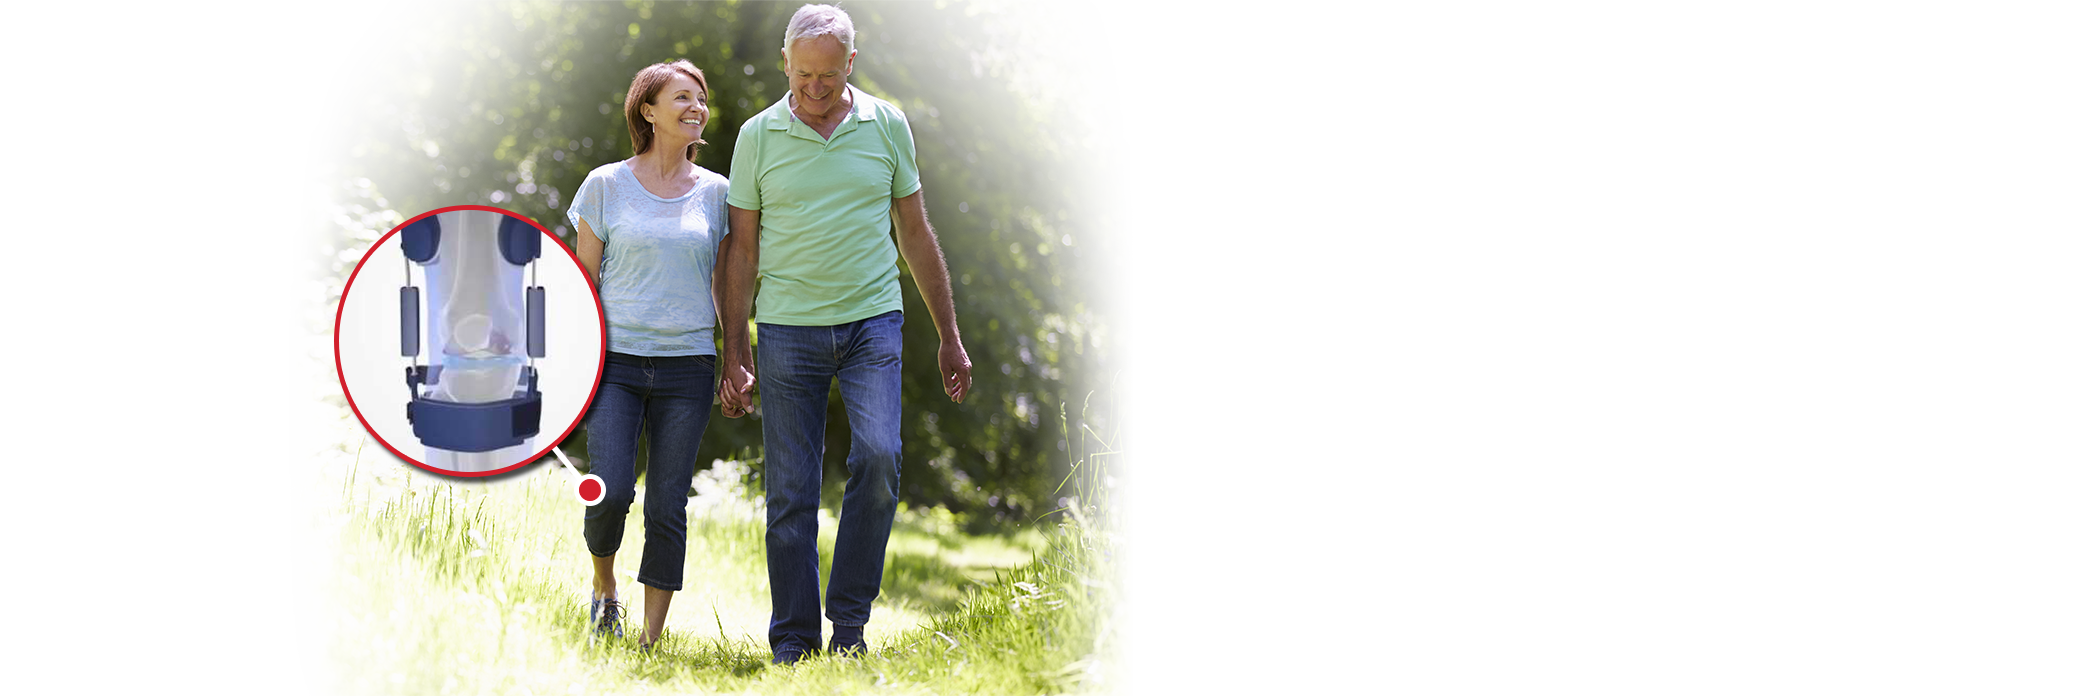 Elderly couple taking a walk through the park, with zoom-in on knee brace worn by woman